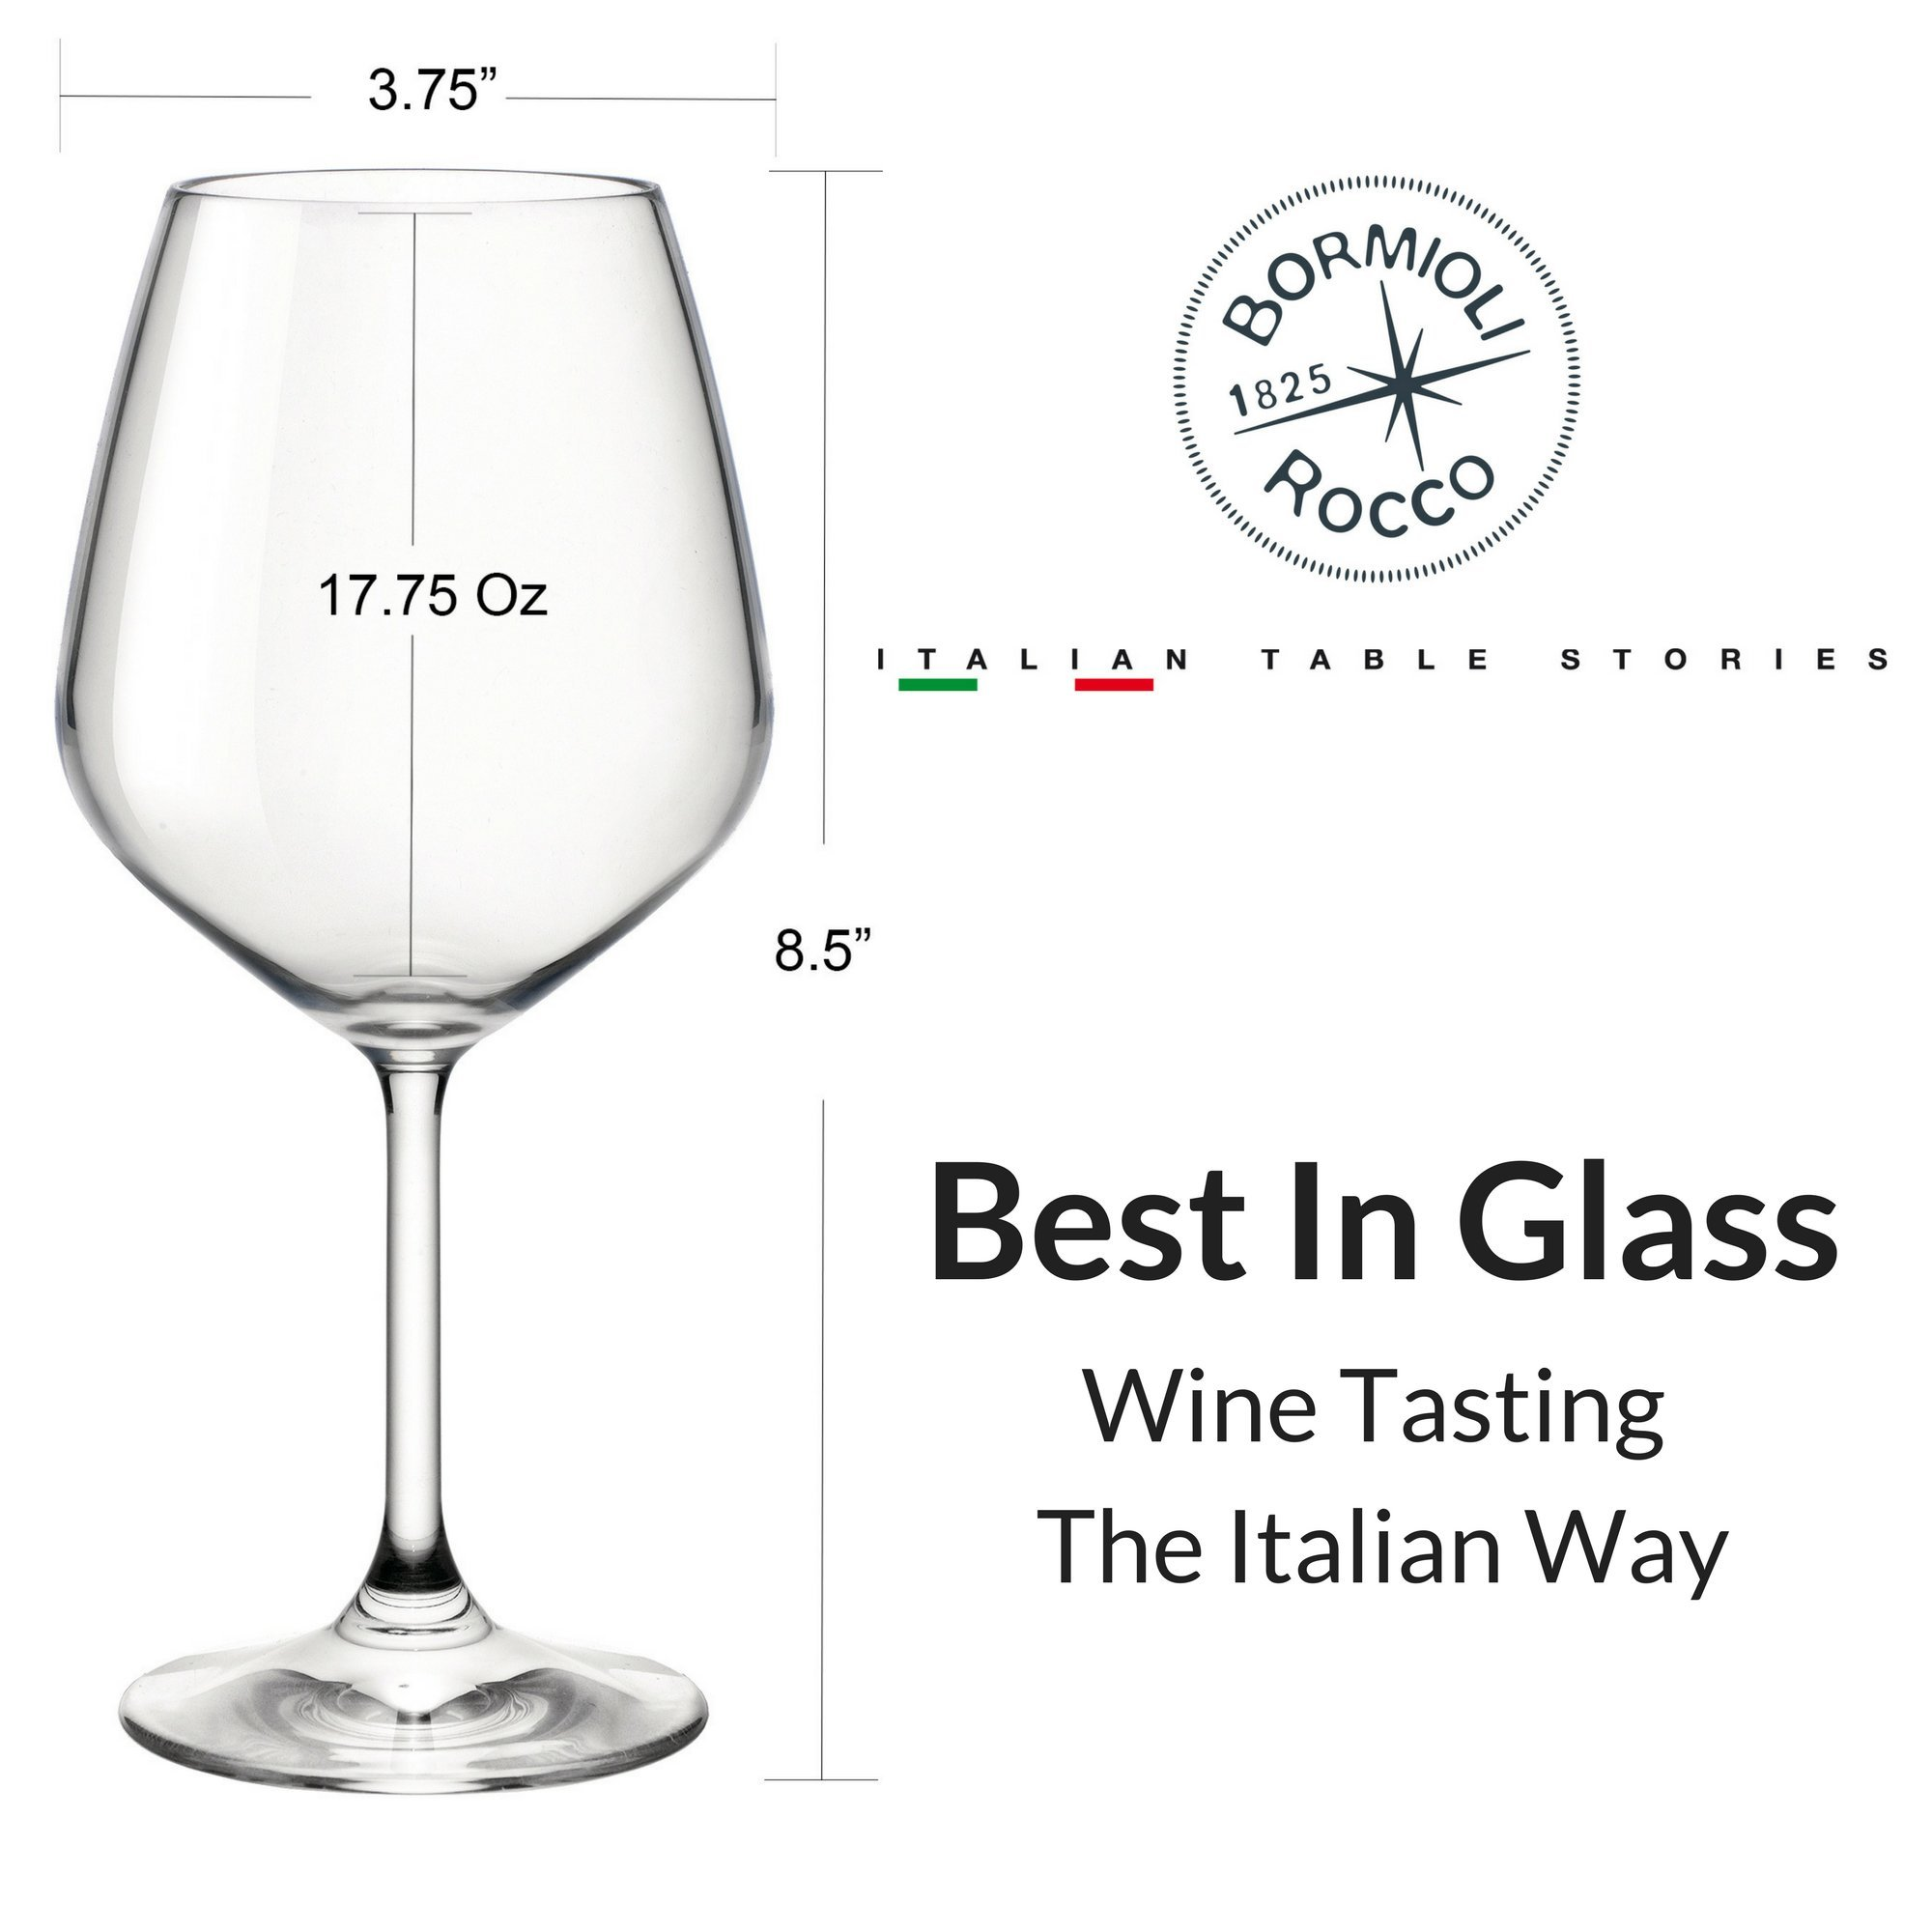 Bormioli Rocco 18oz Red Wine Glasses (Set Of 4): Crystal Clear Star Glass, Laser Cut Rim For Wine Tasting, Lead-Free Cups, Elegant Party Drinking Glassware, Dishwasher Safe, Restaurant Quality by Bormioli Rocco (Image #4)